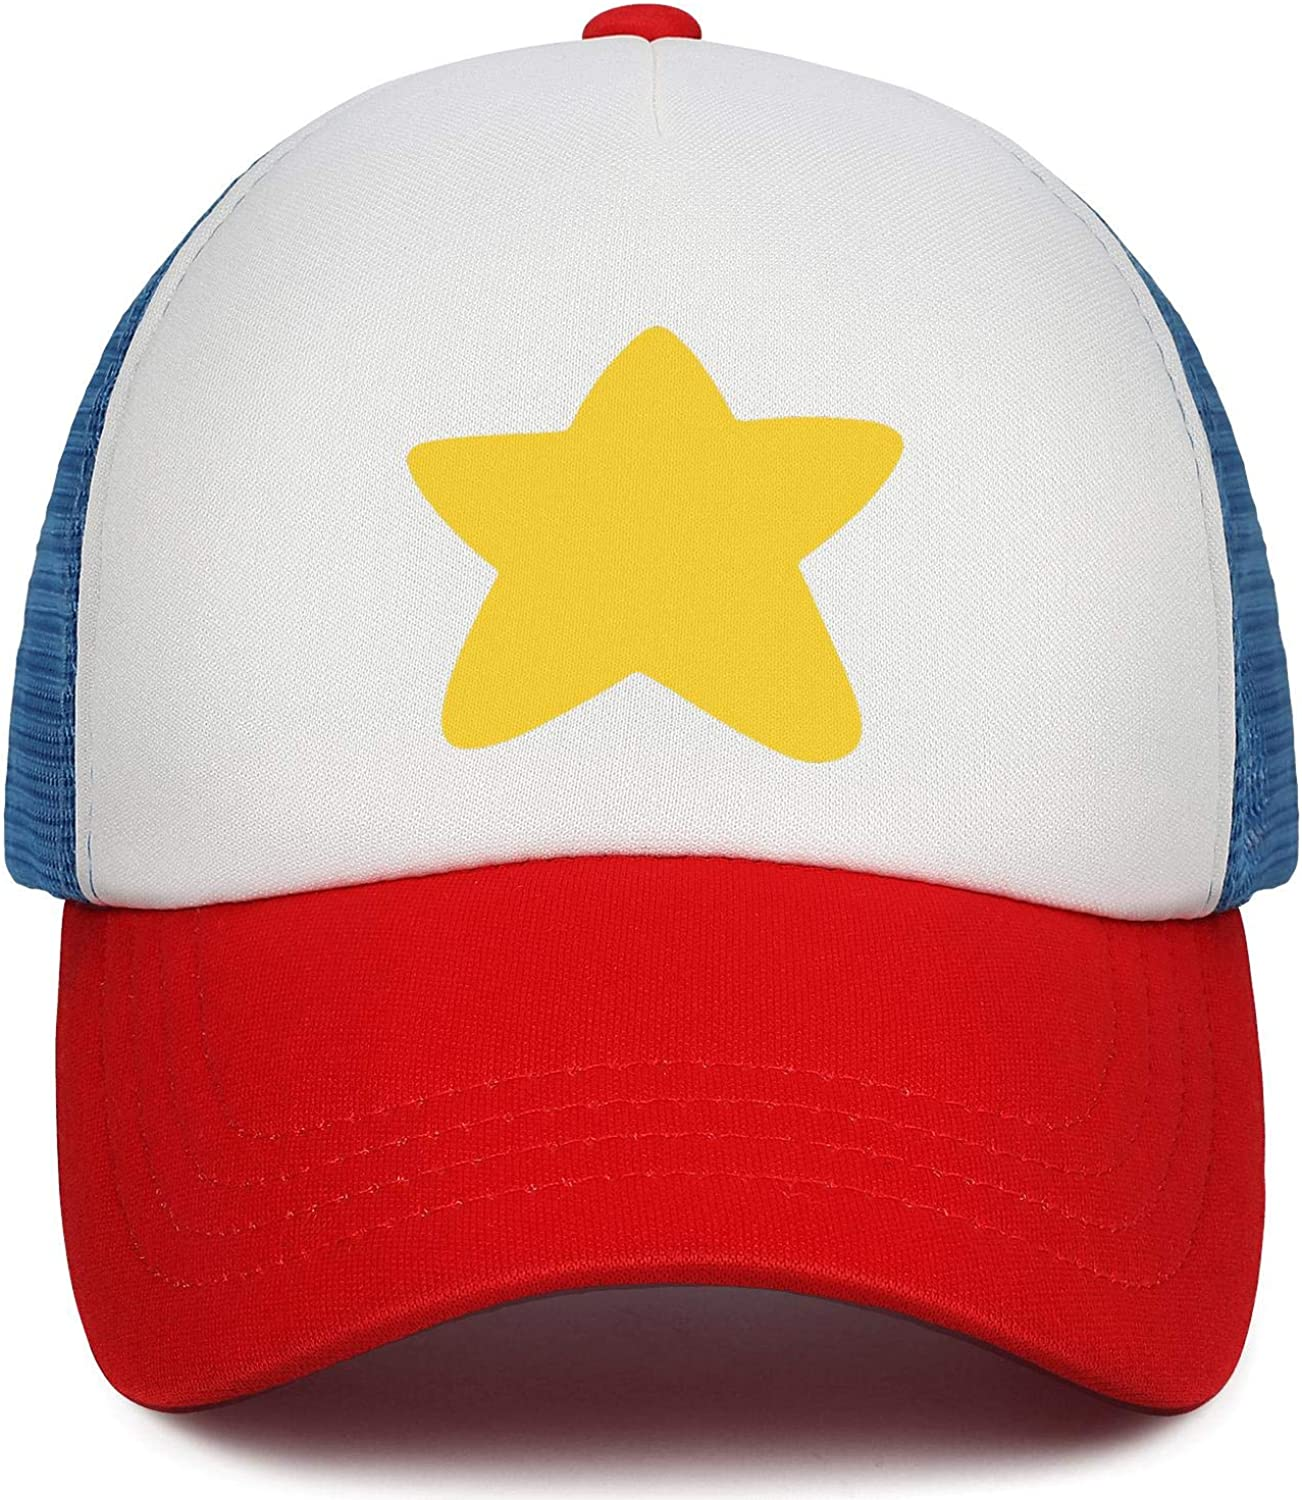 Youth Children Hat Steven-Universe-Cookie-Cat-Star Cap Stylish Boys Girls Sports Caps